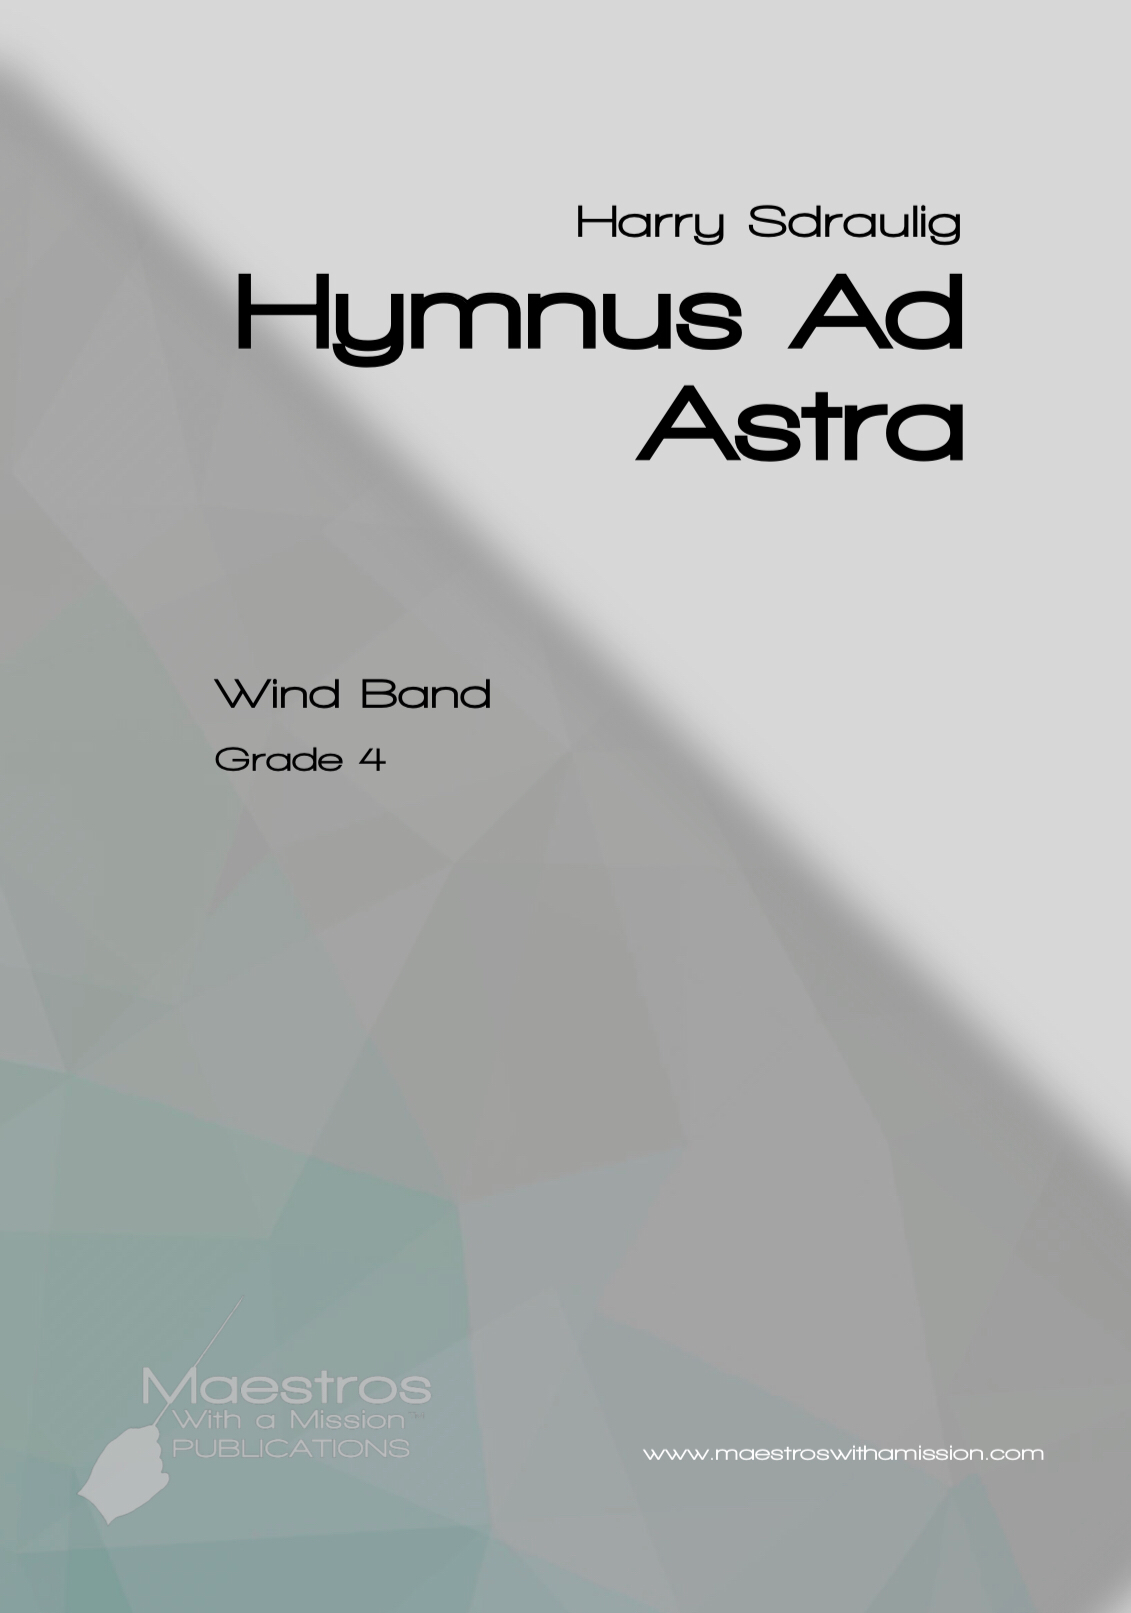 Hymnus Ad Astra by Harry Sdraulig